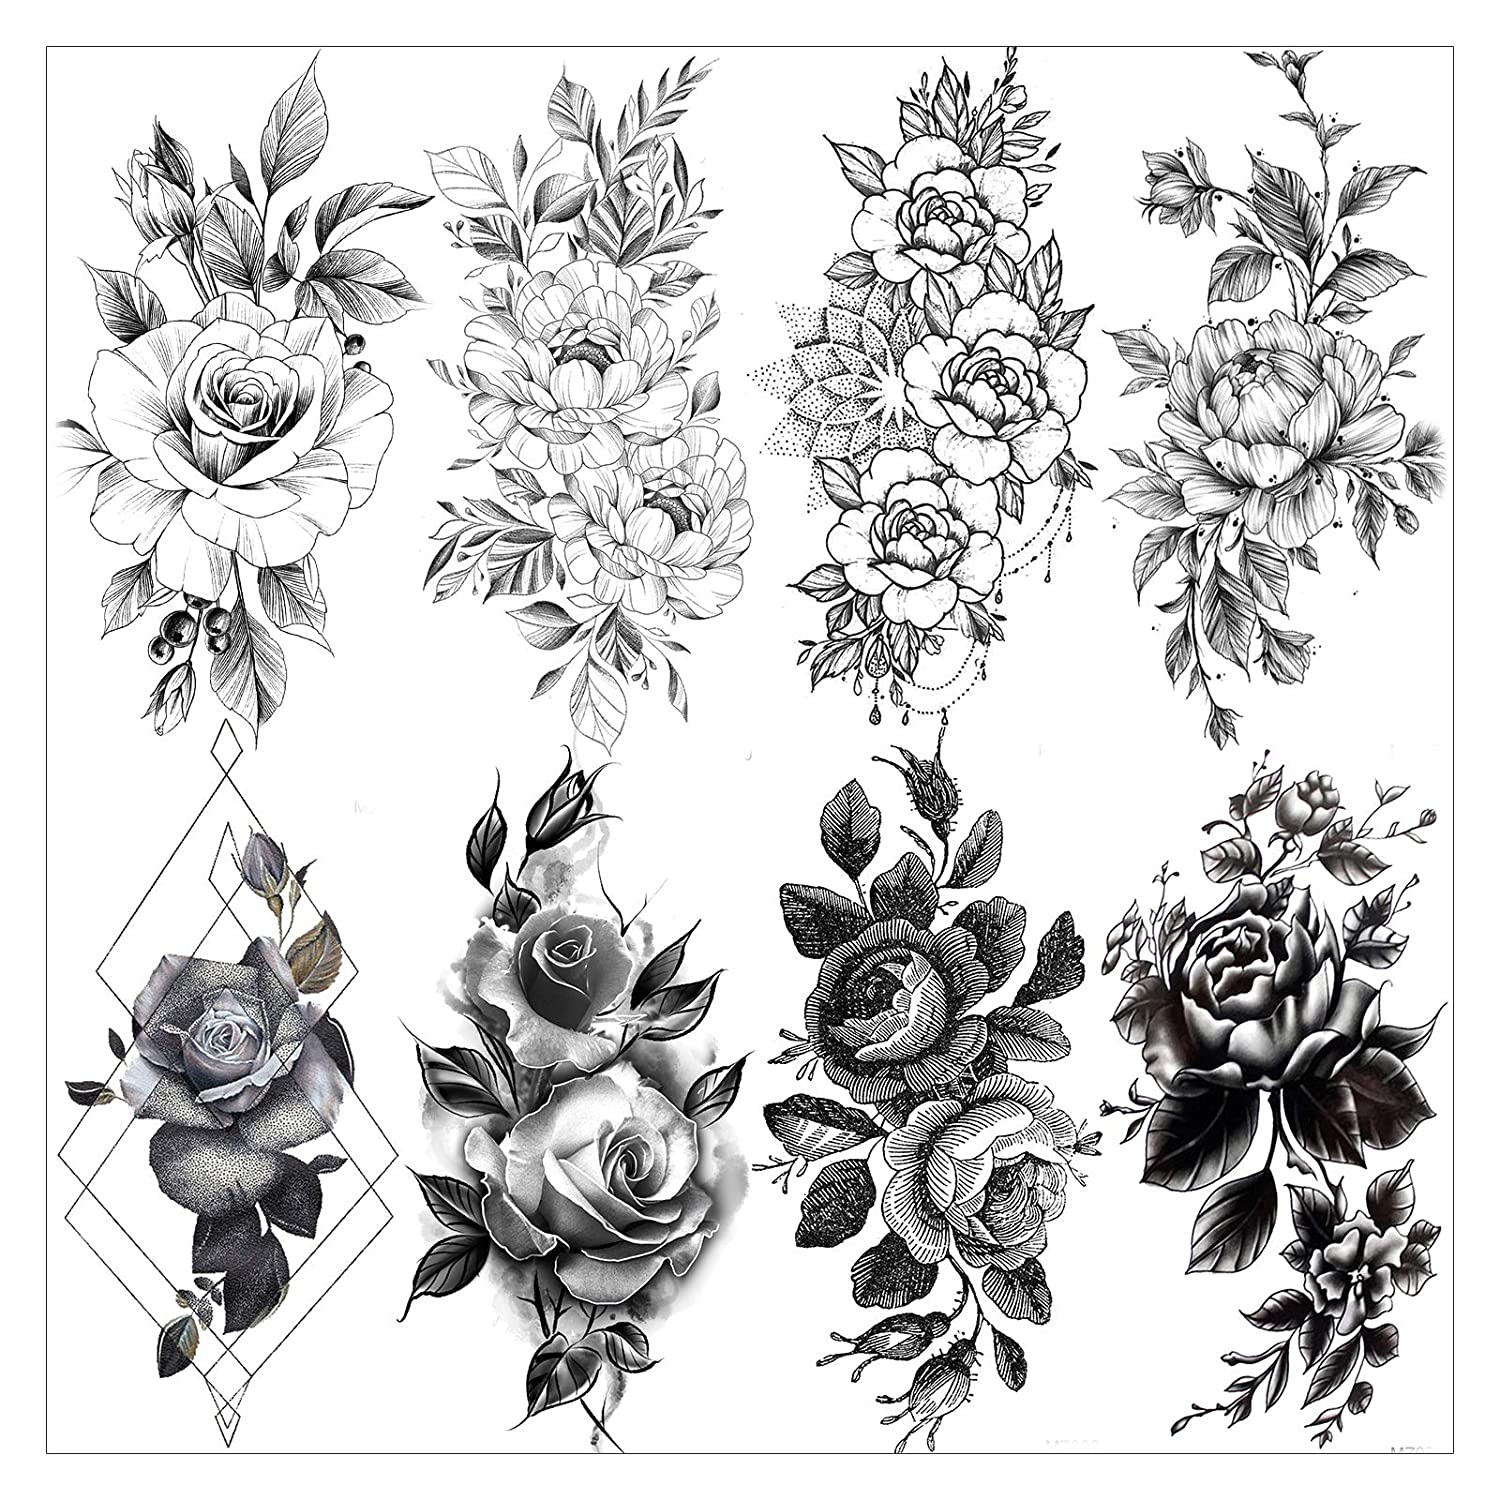 Amazon Com Vantaty 8 Sheets Petal 3d Black Flower Rose Temporary Tattoos For Women Waterproof Fake Body Art Arm Sketch Tattoo Stickers For Girls Shoulder Arm Leaf Tatoo Adults Beauty Beauty Flower tattoos can be pretty and rather feminine looking, but all the same there is considerable variety with regard to the style and overall look of the tattoo. vantaty 8 sheets petal 3d black flower rose temporary tattoos for women waterproof fake body art arm sketch tattoo stickers for girls shoulder arm